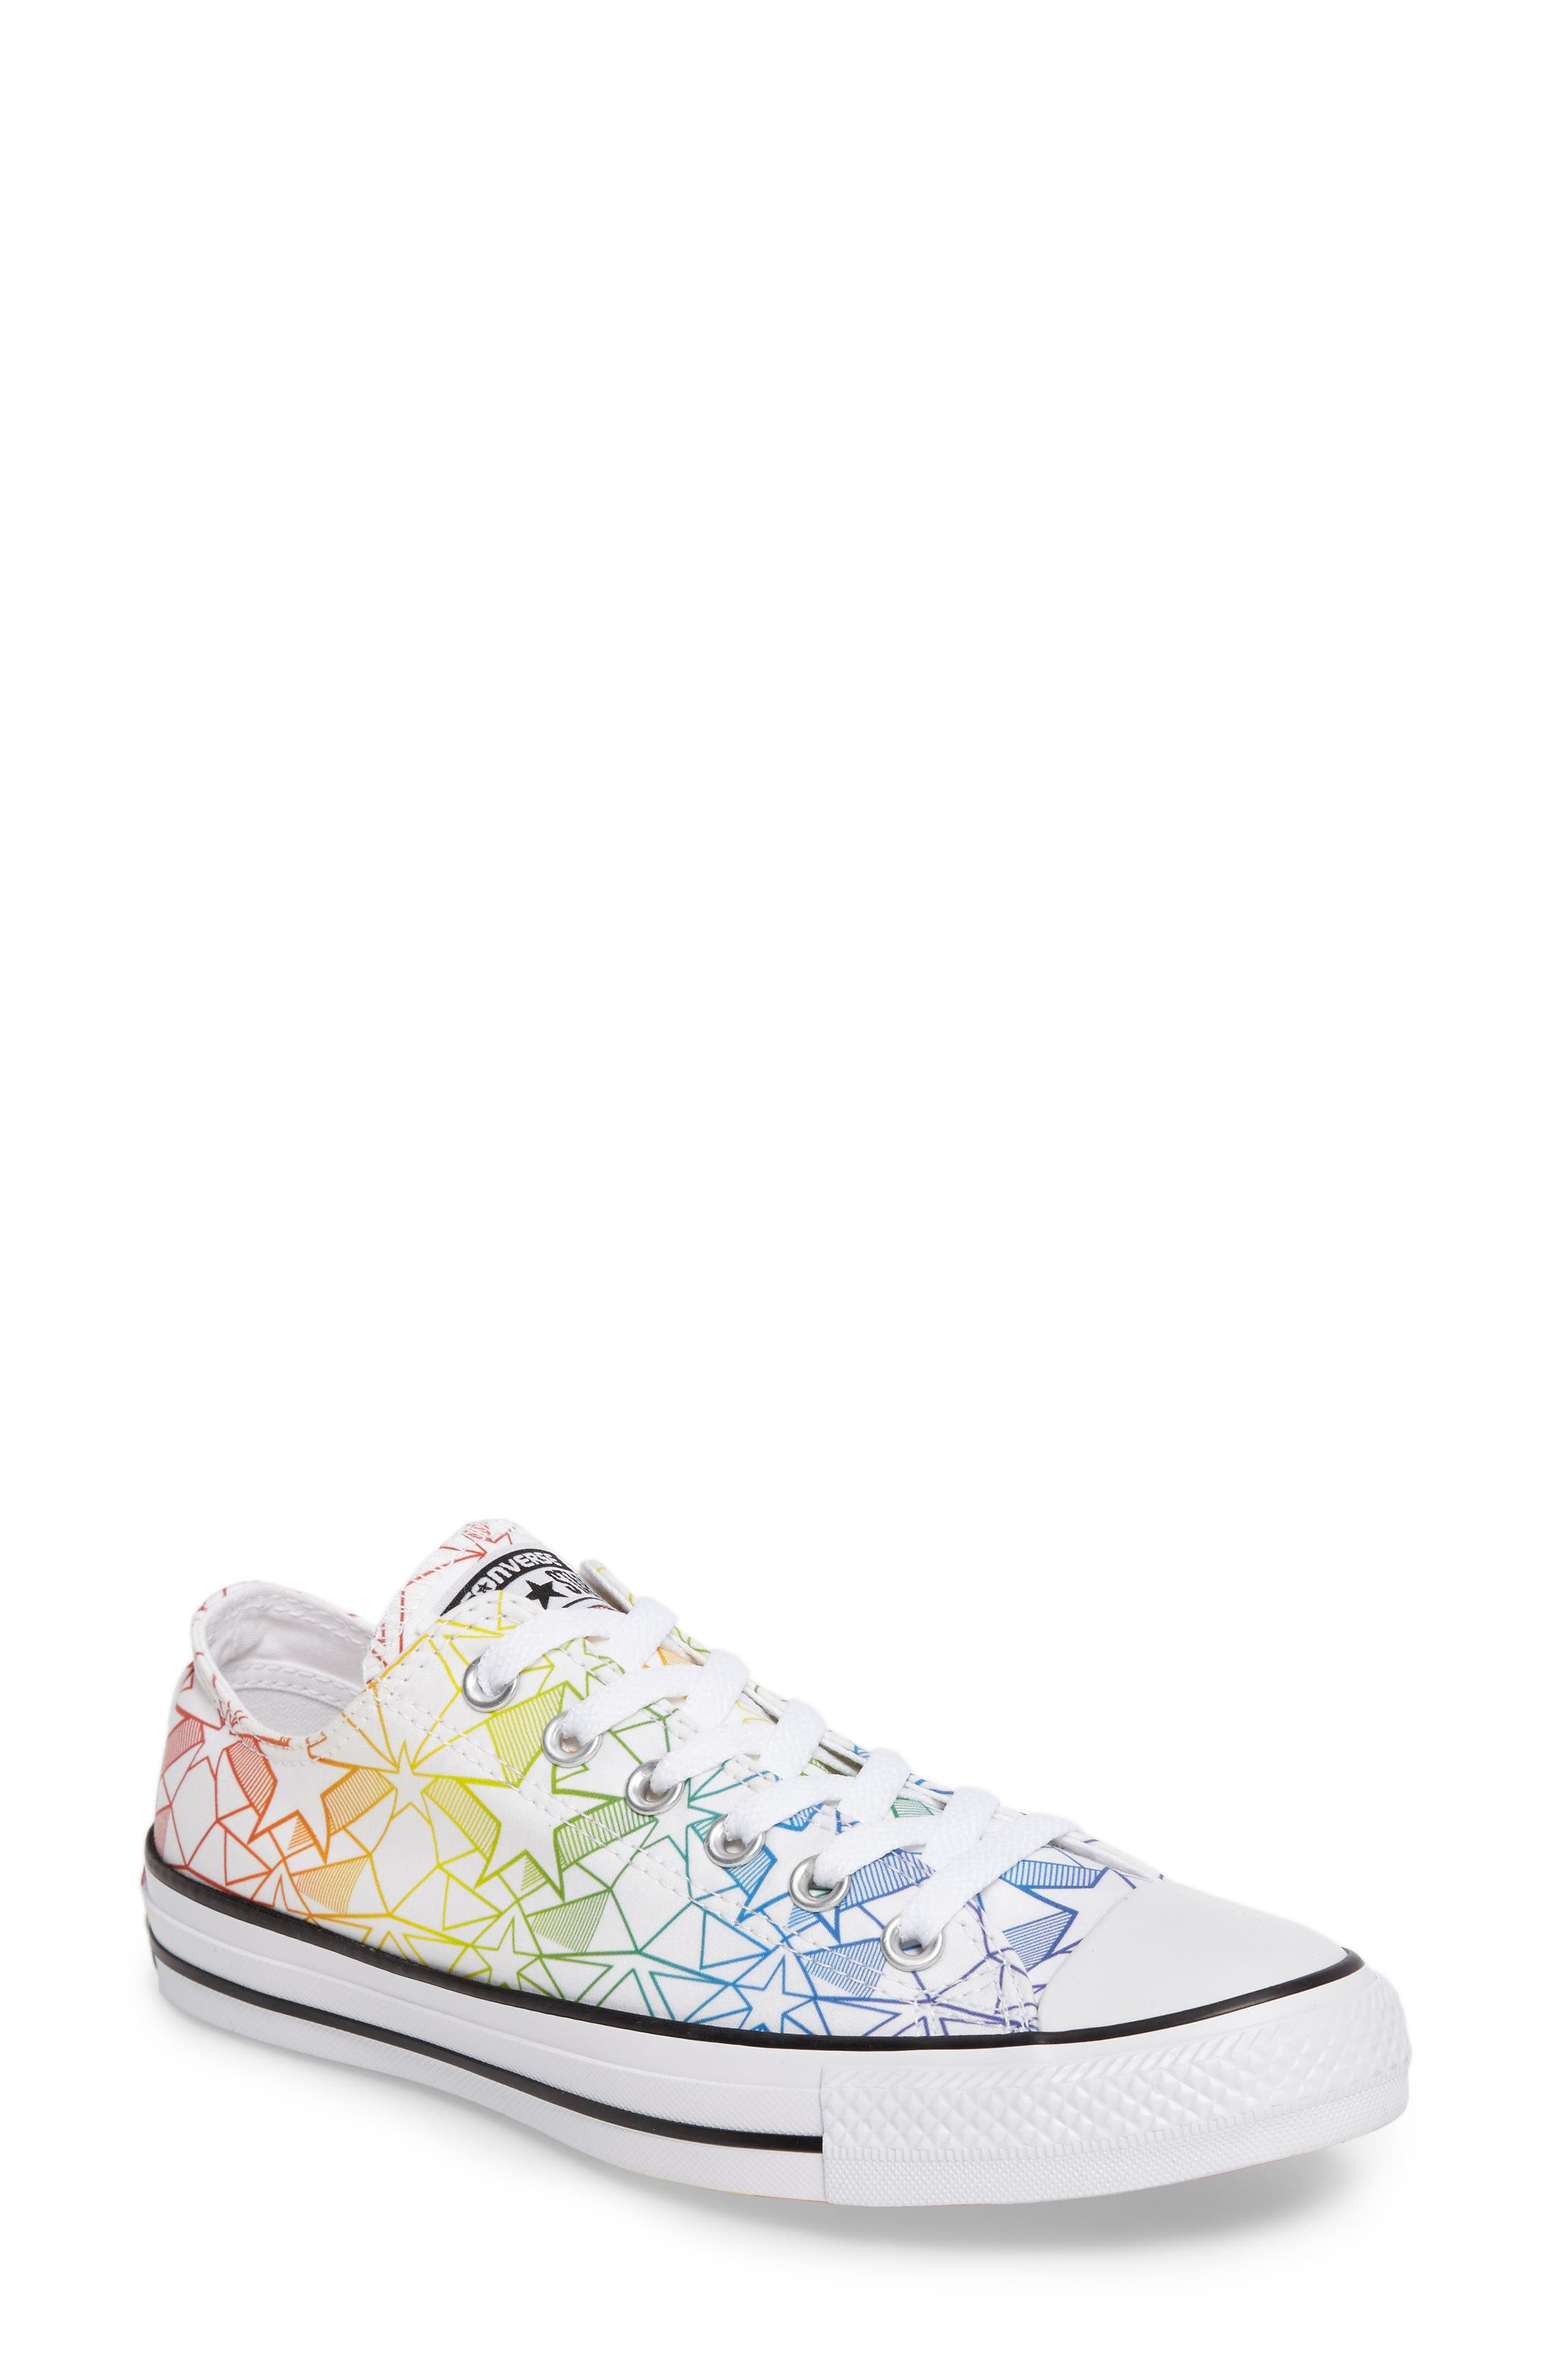 Chuck Taylor<sup>®</sup> All Star<sup>®</sup> Pride Low Top Sneaker,                             Main thumbnail 1, color,                             100